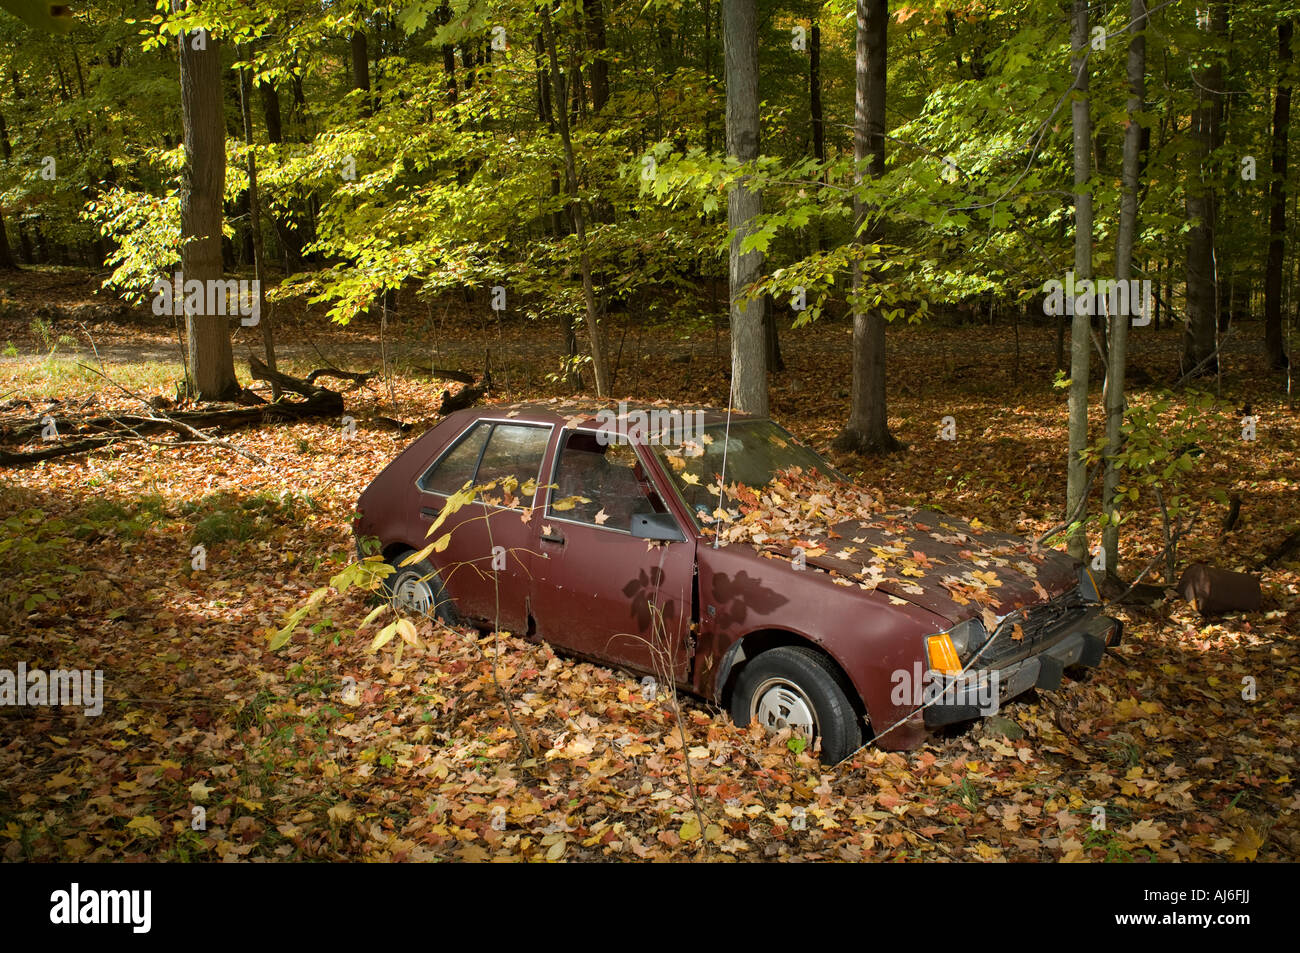 Old Car In Woods Stock Photo 14637833 Alamy